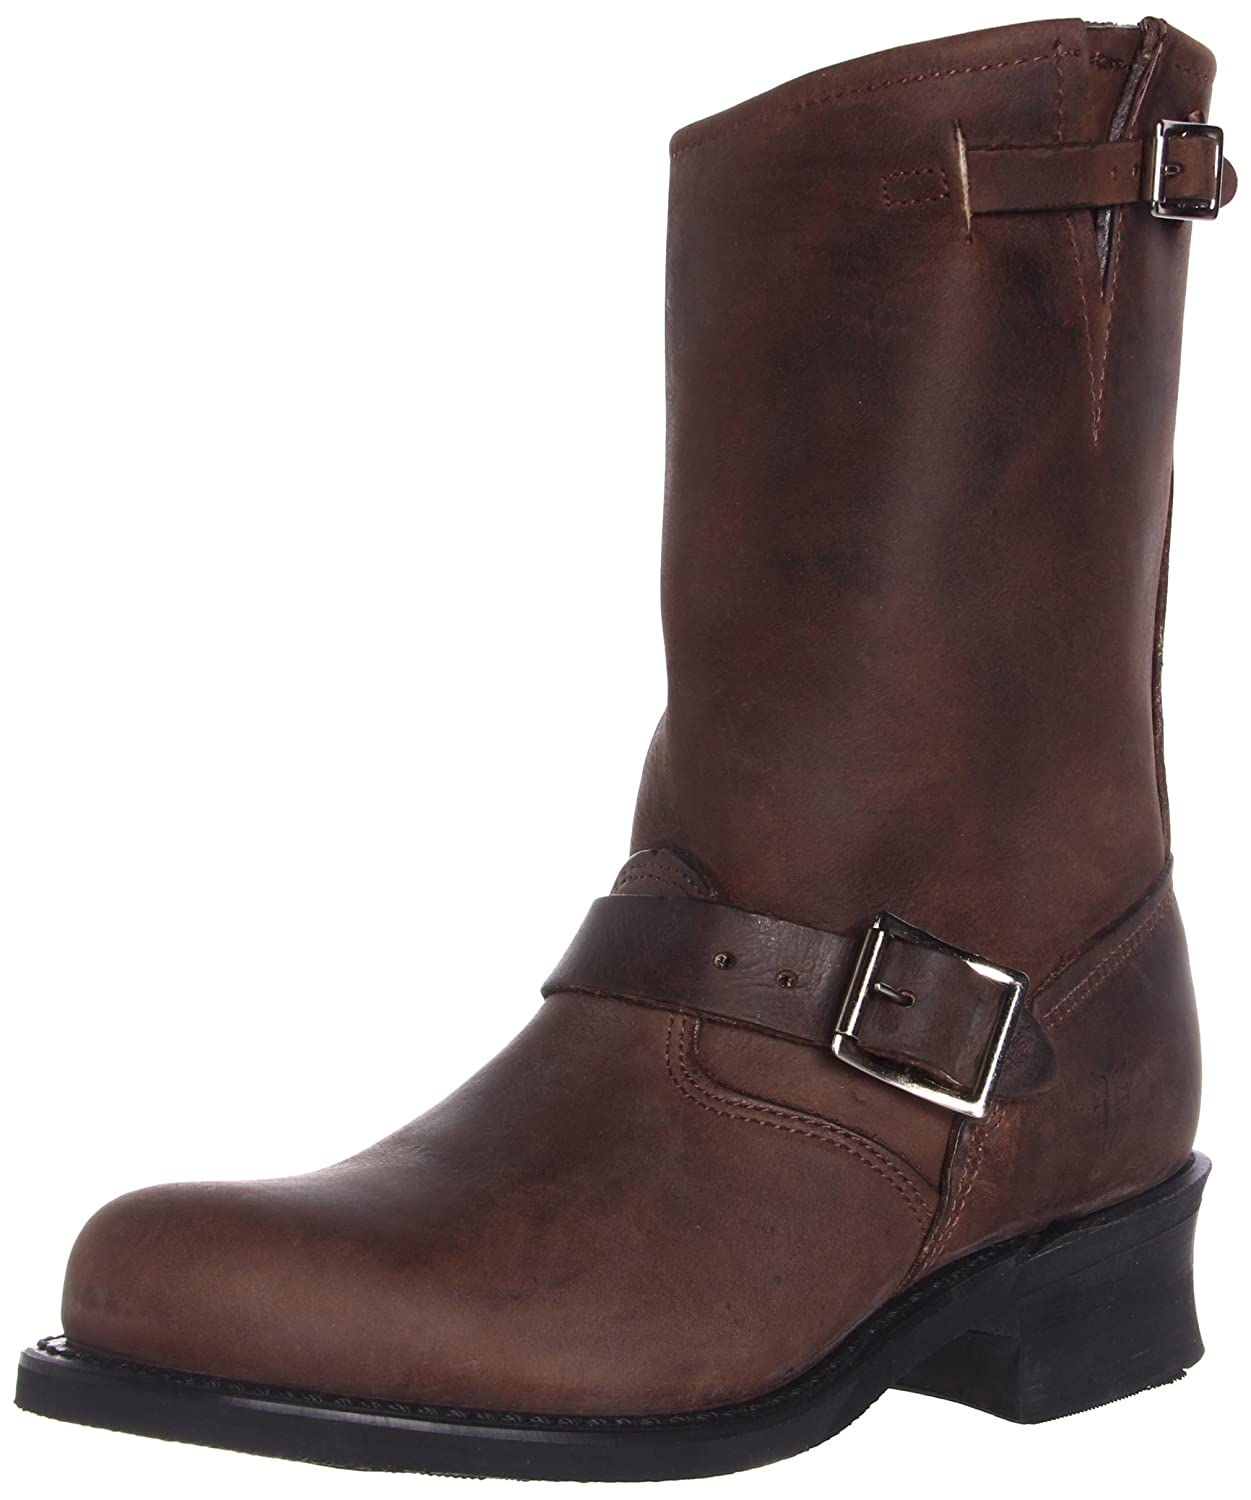 FRYE Women's Engineer 12R Boot B0013ES6QC 9.5 B(M) US|Gaucho-77400